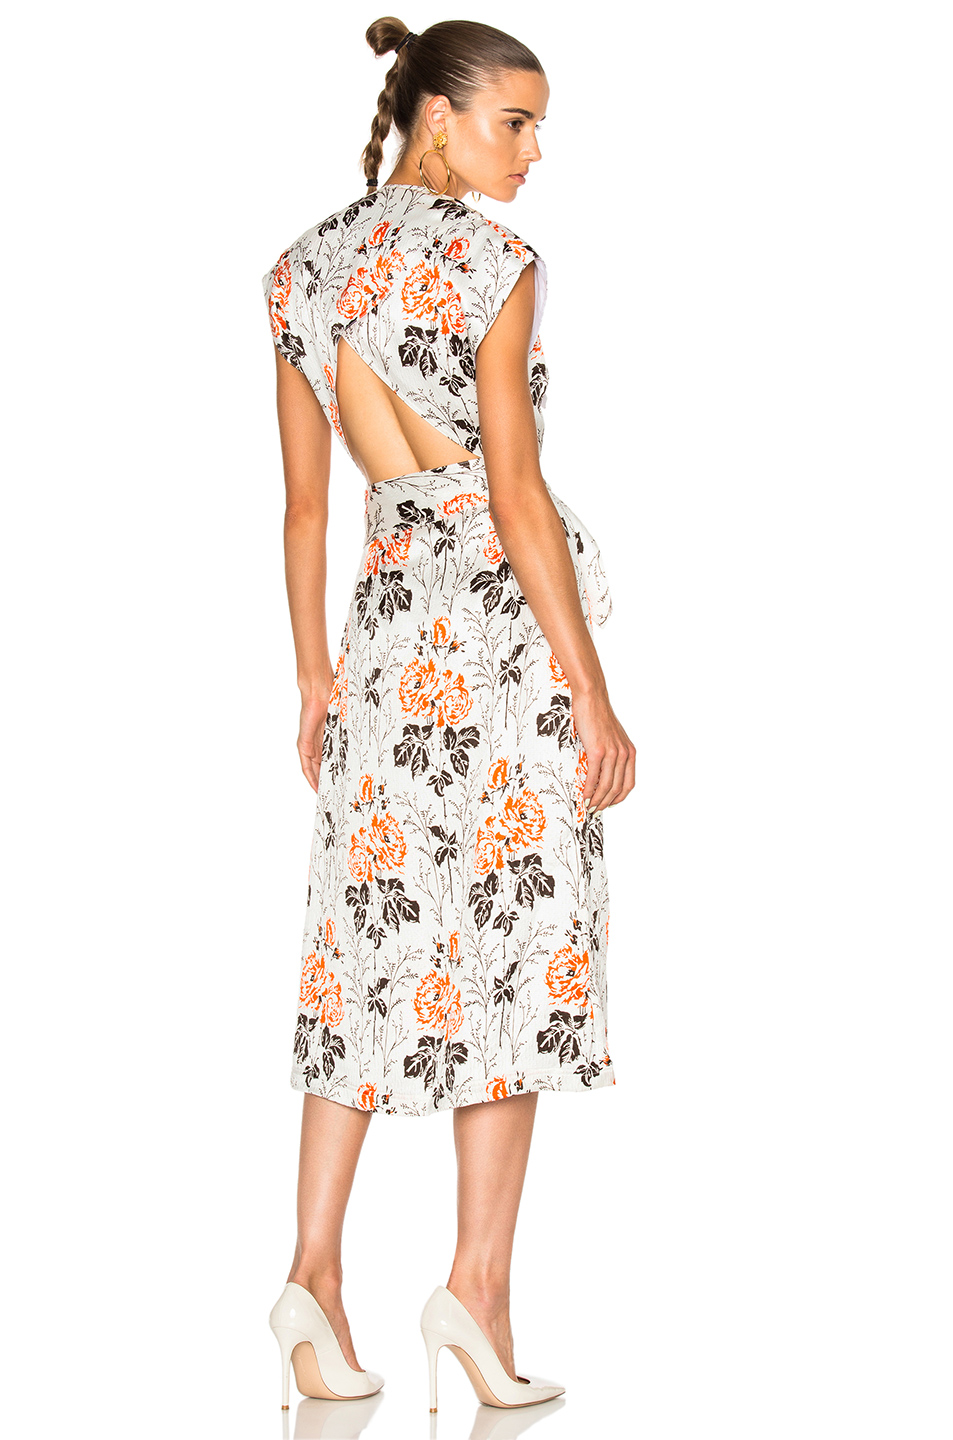 Victoria Beckham Crepon Print Belted Wrap Midi Dress in Floral,Red,White